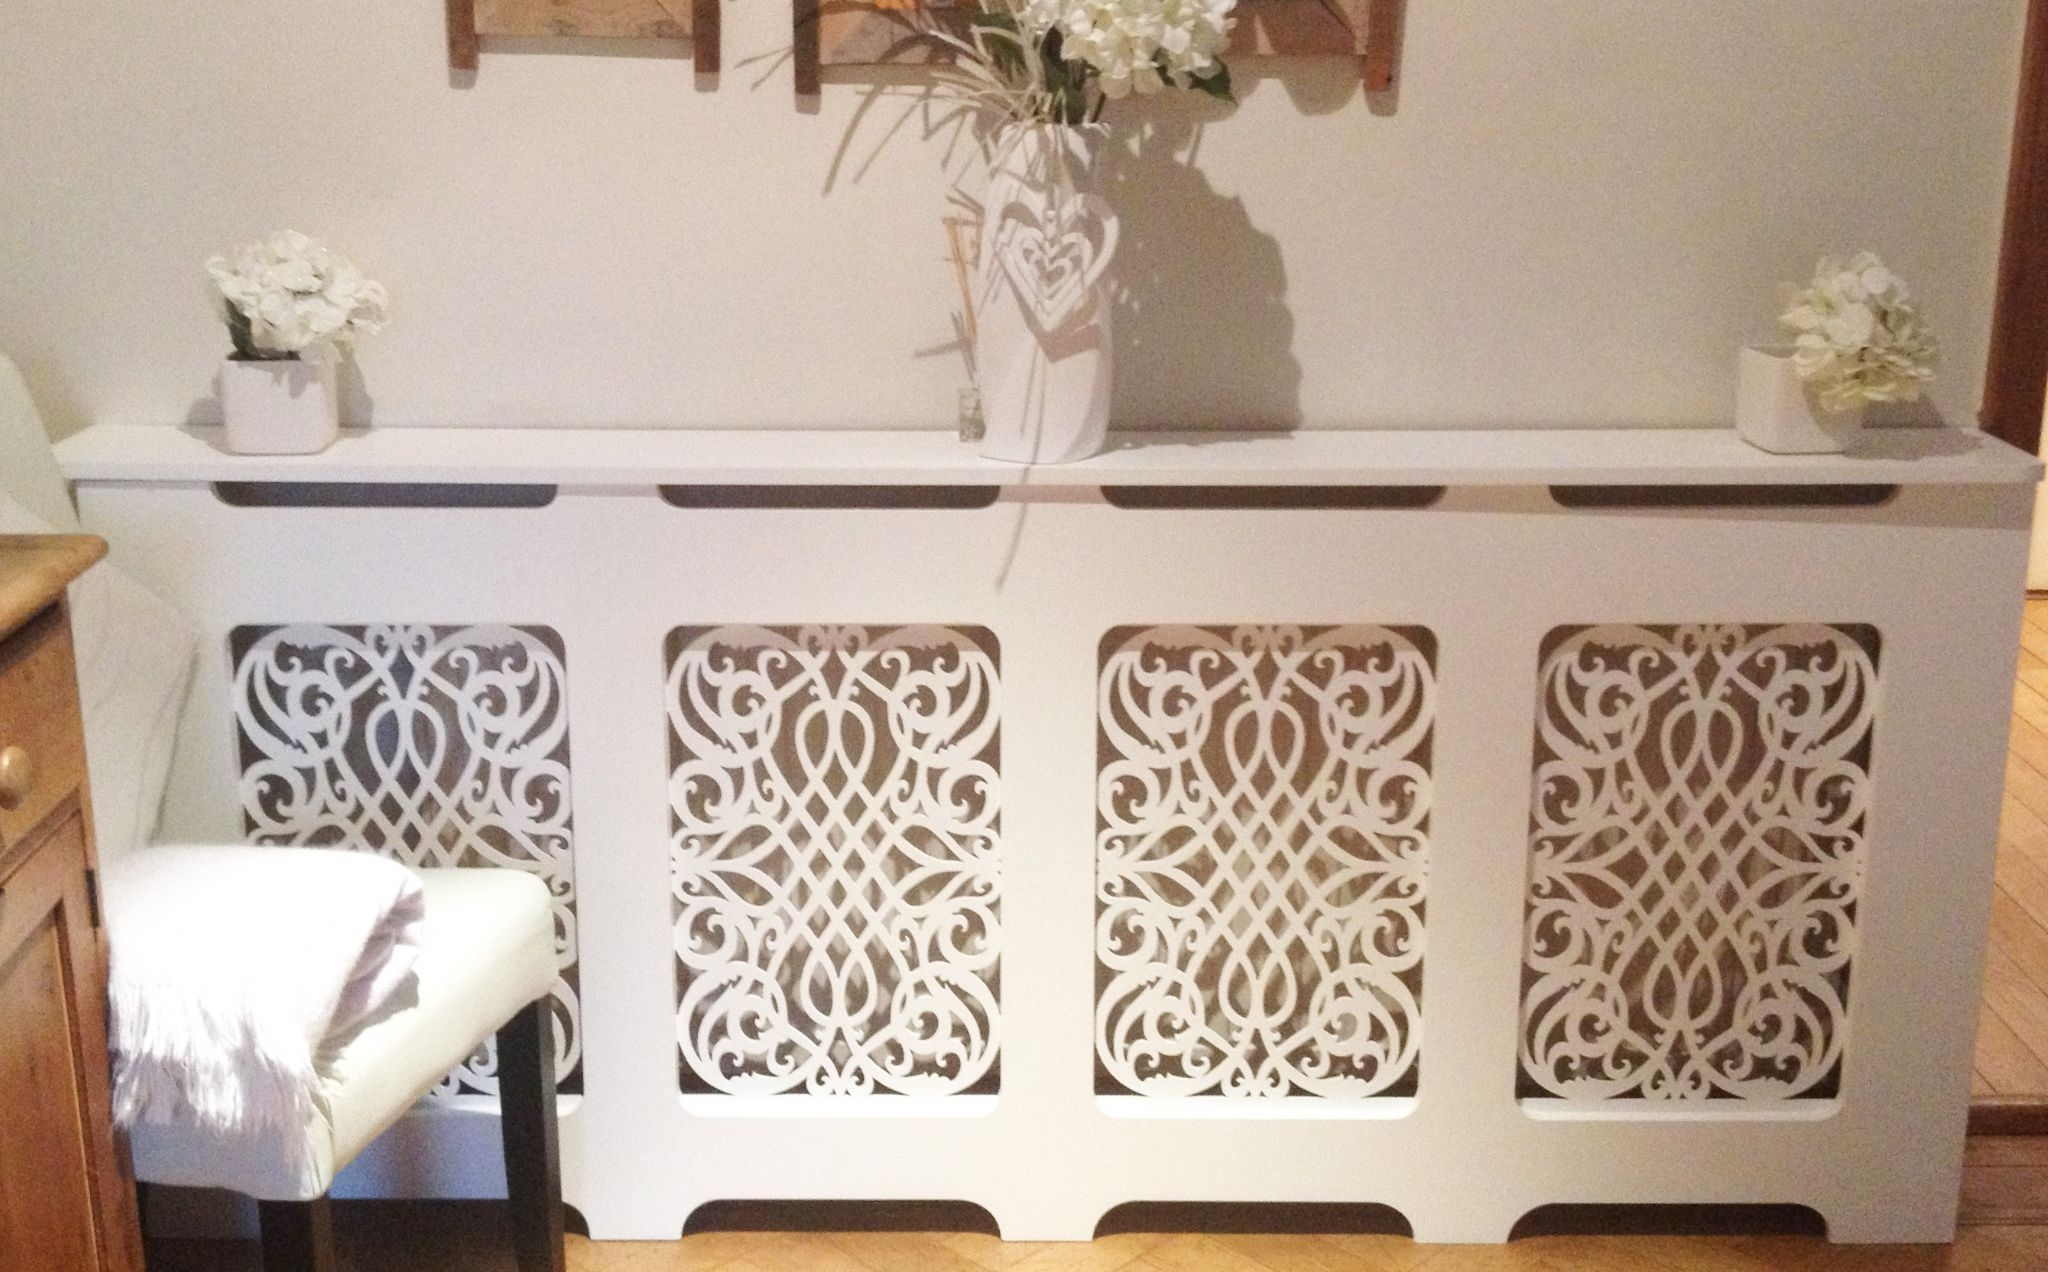 Radiator Cover Shelf Unit In Well Known Classic Style Radiator Cover (View 14 of 15)